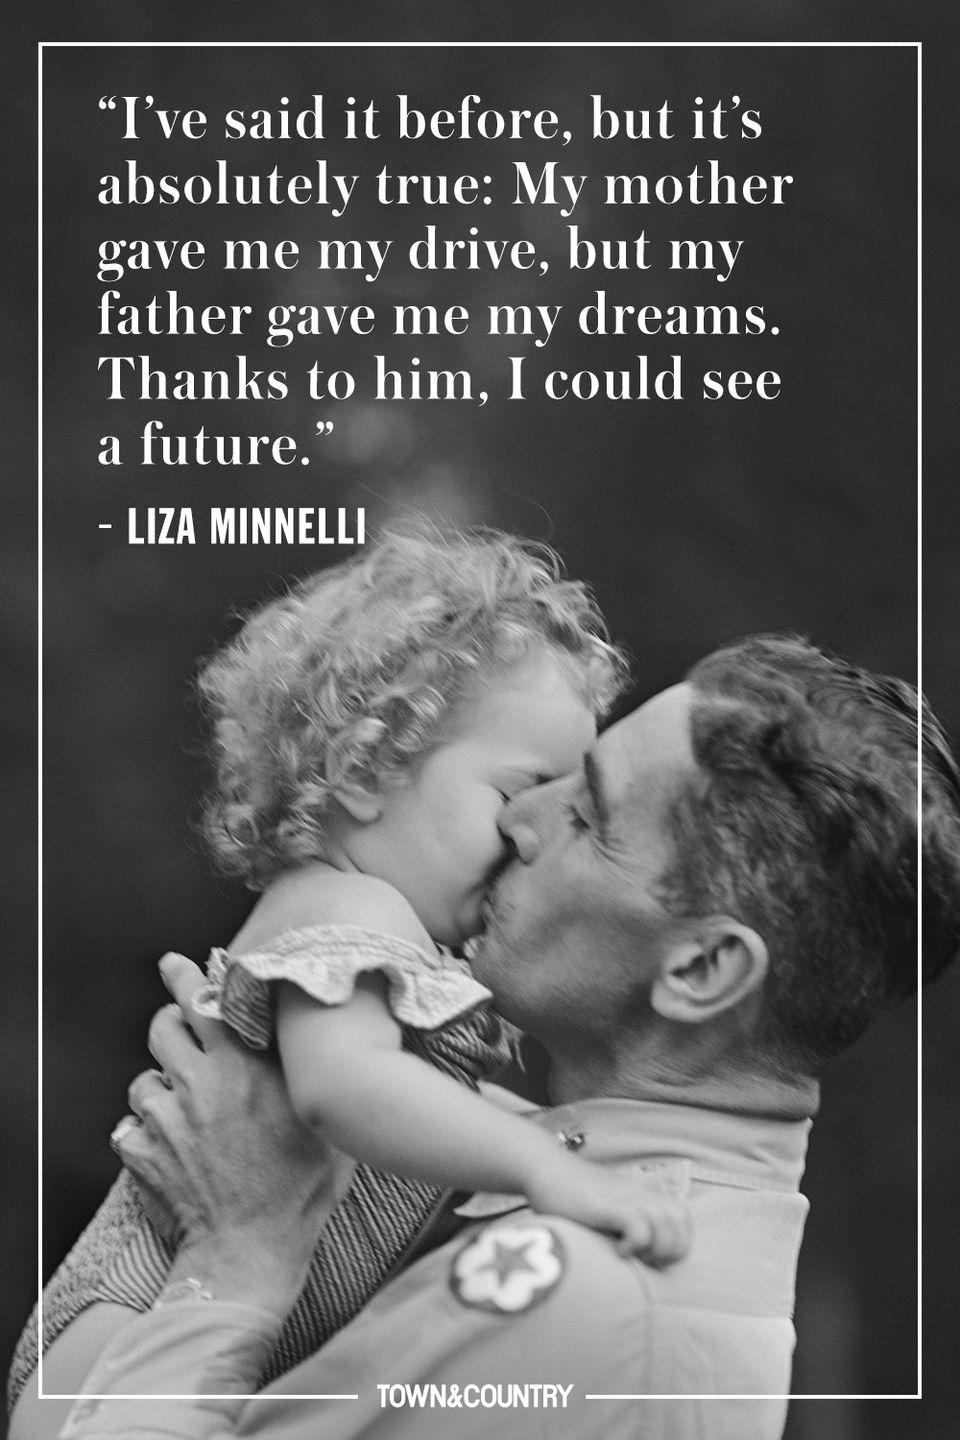 15 Touching Father's Day Quotes That'll Melt Your Dad's Heart